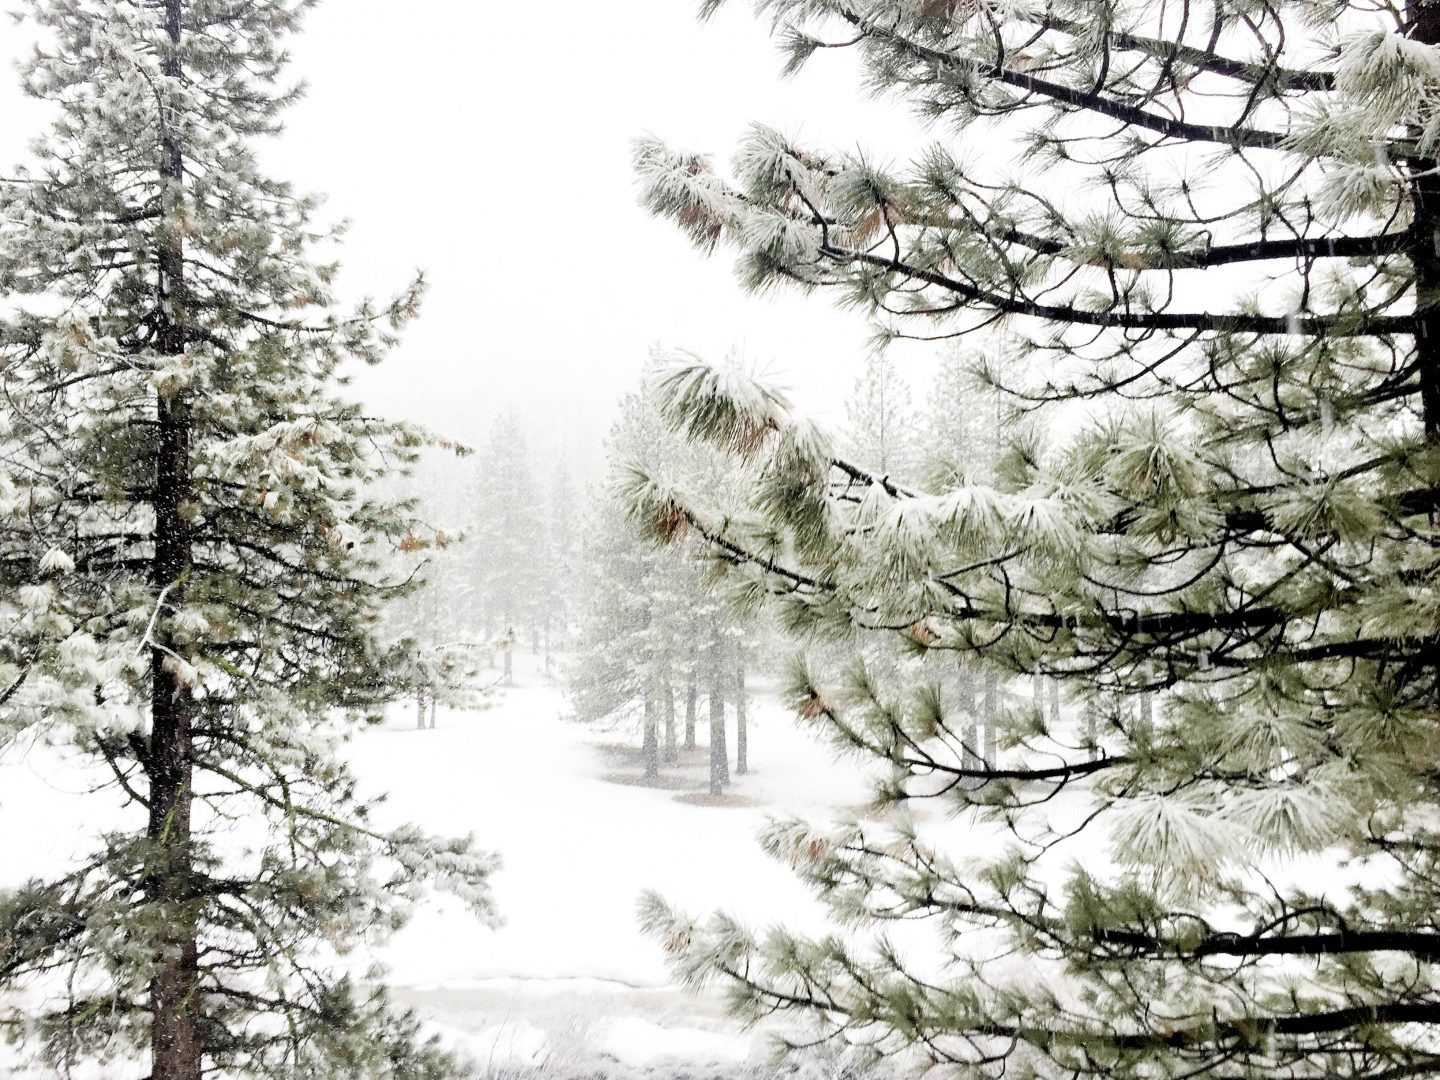 Lake Tahoe : Winter Wonderland